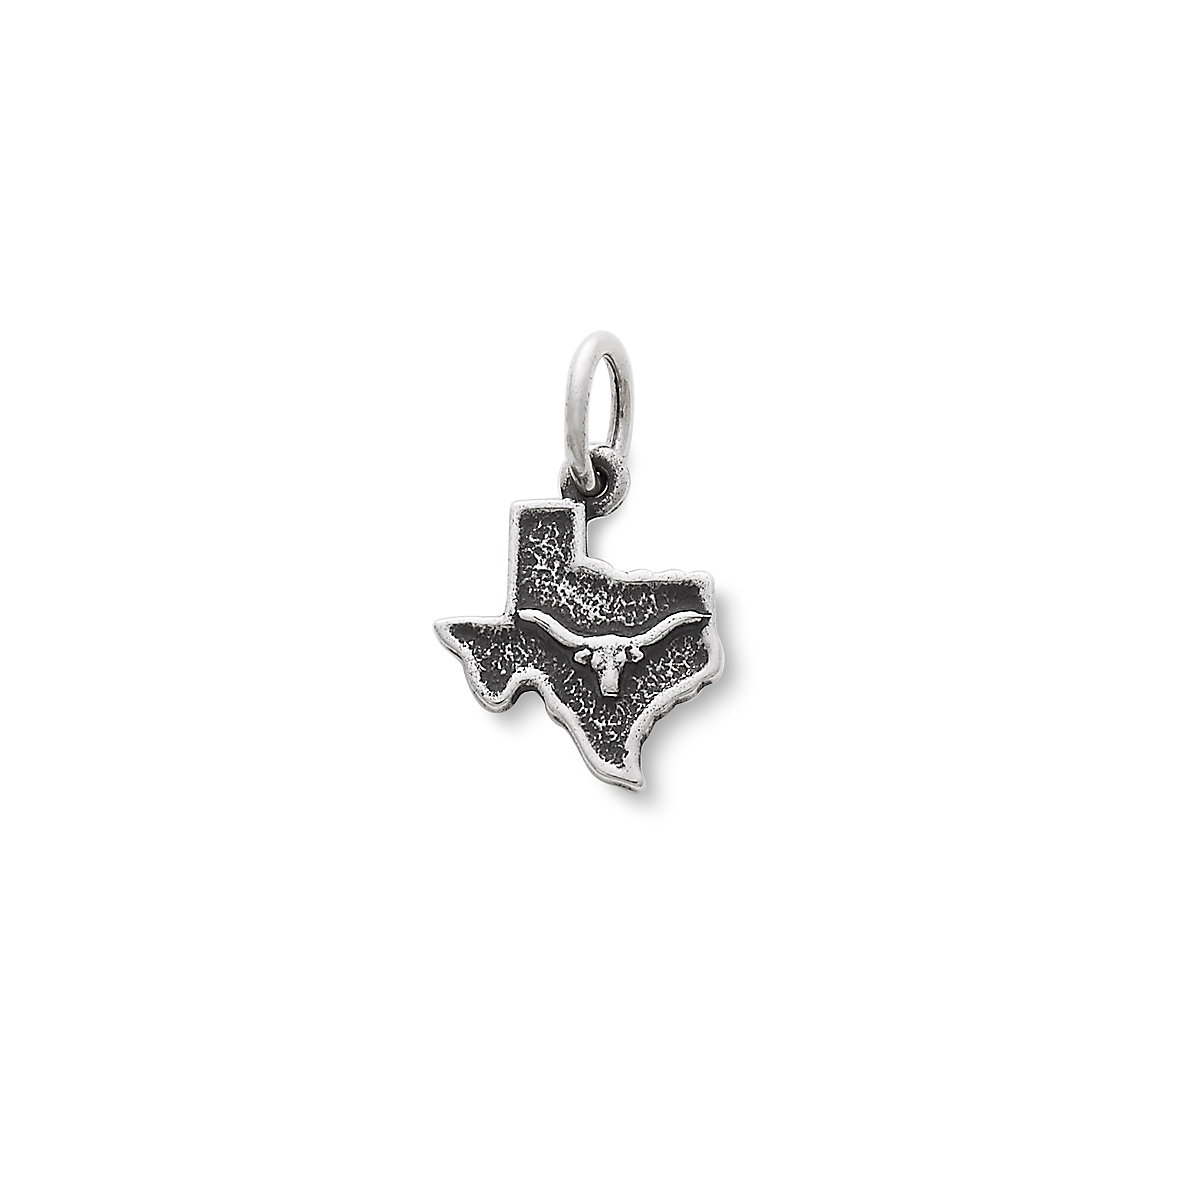 Texas texas star charms and jewelry james avery longhorn in texas charm mozeypictures Choice Image